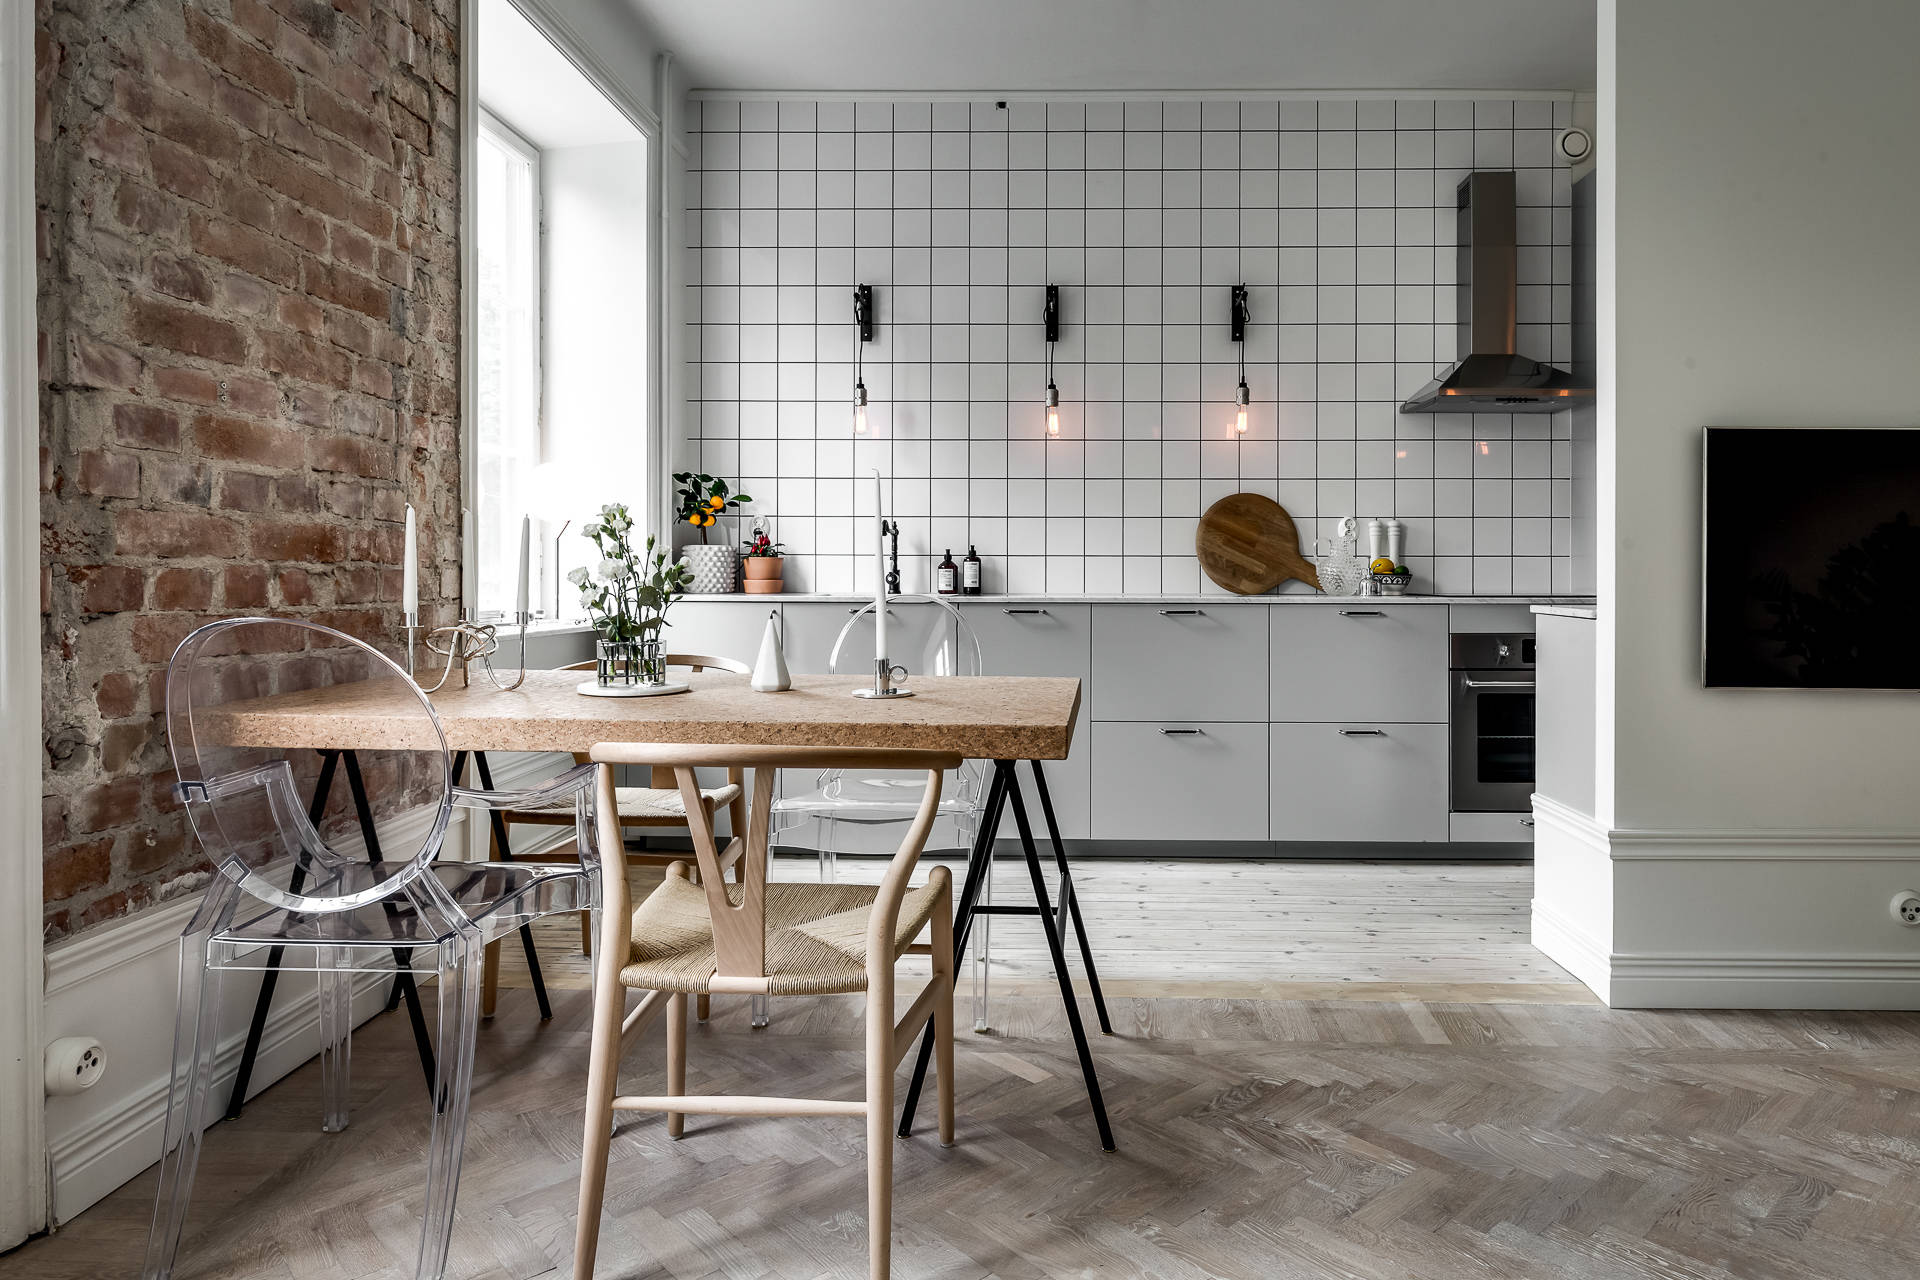 ... Minimal Kitchen With An Industrial Touch   Via Coco Lapine Design Blog  ...